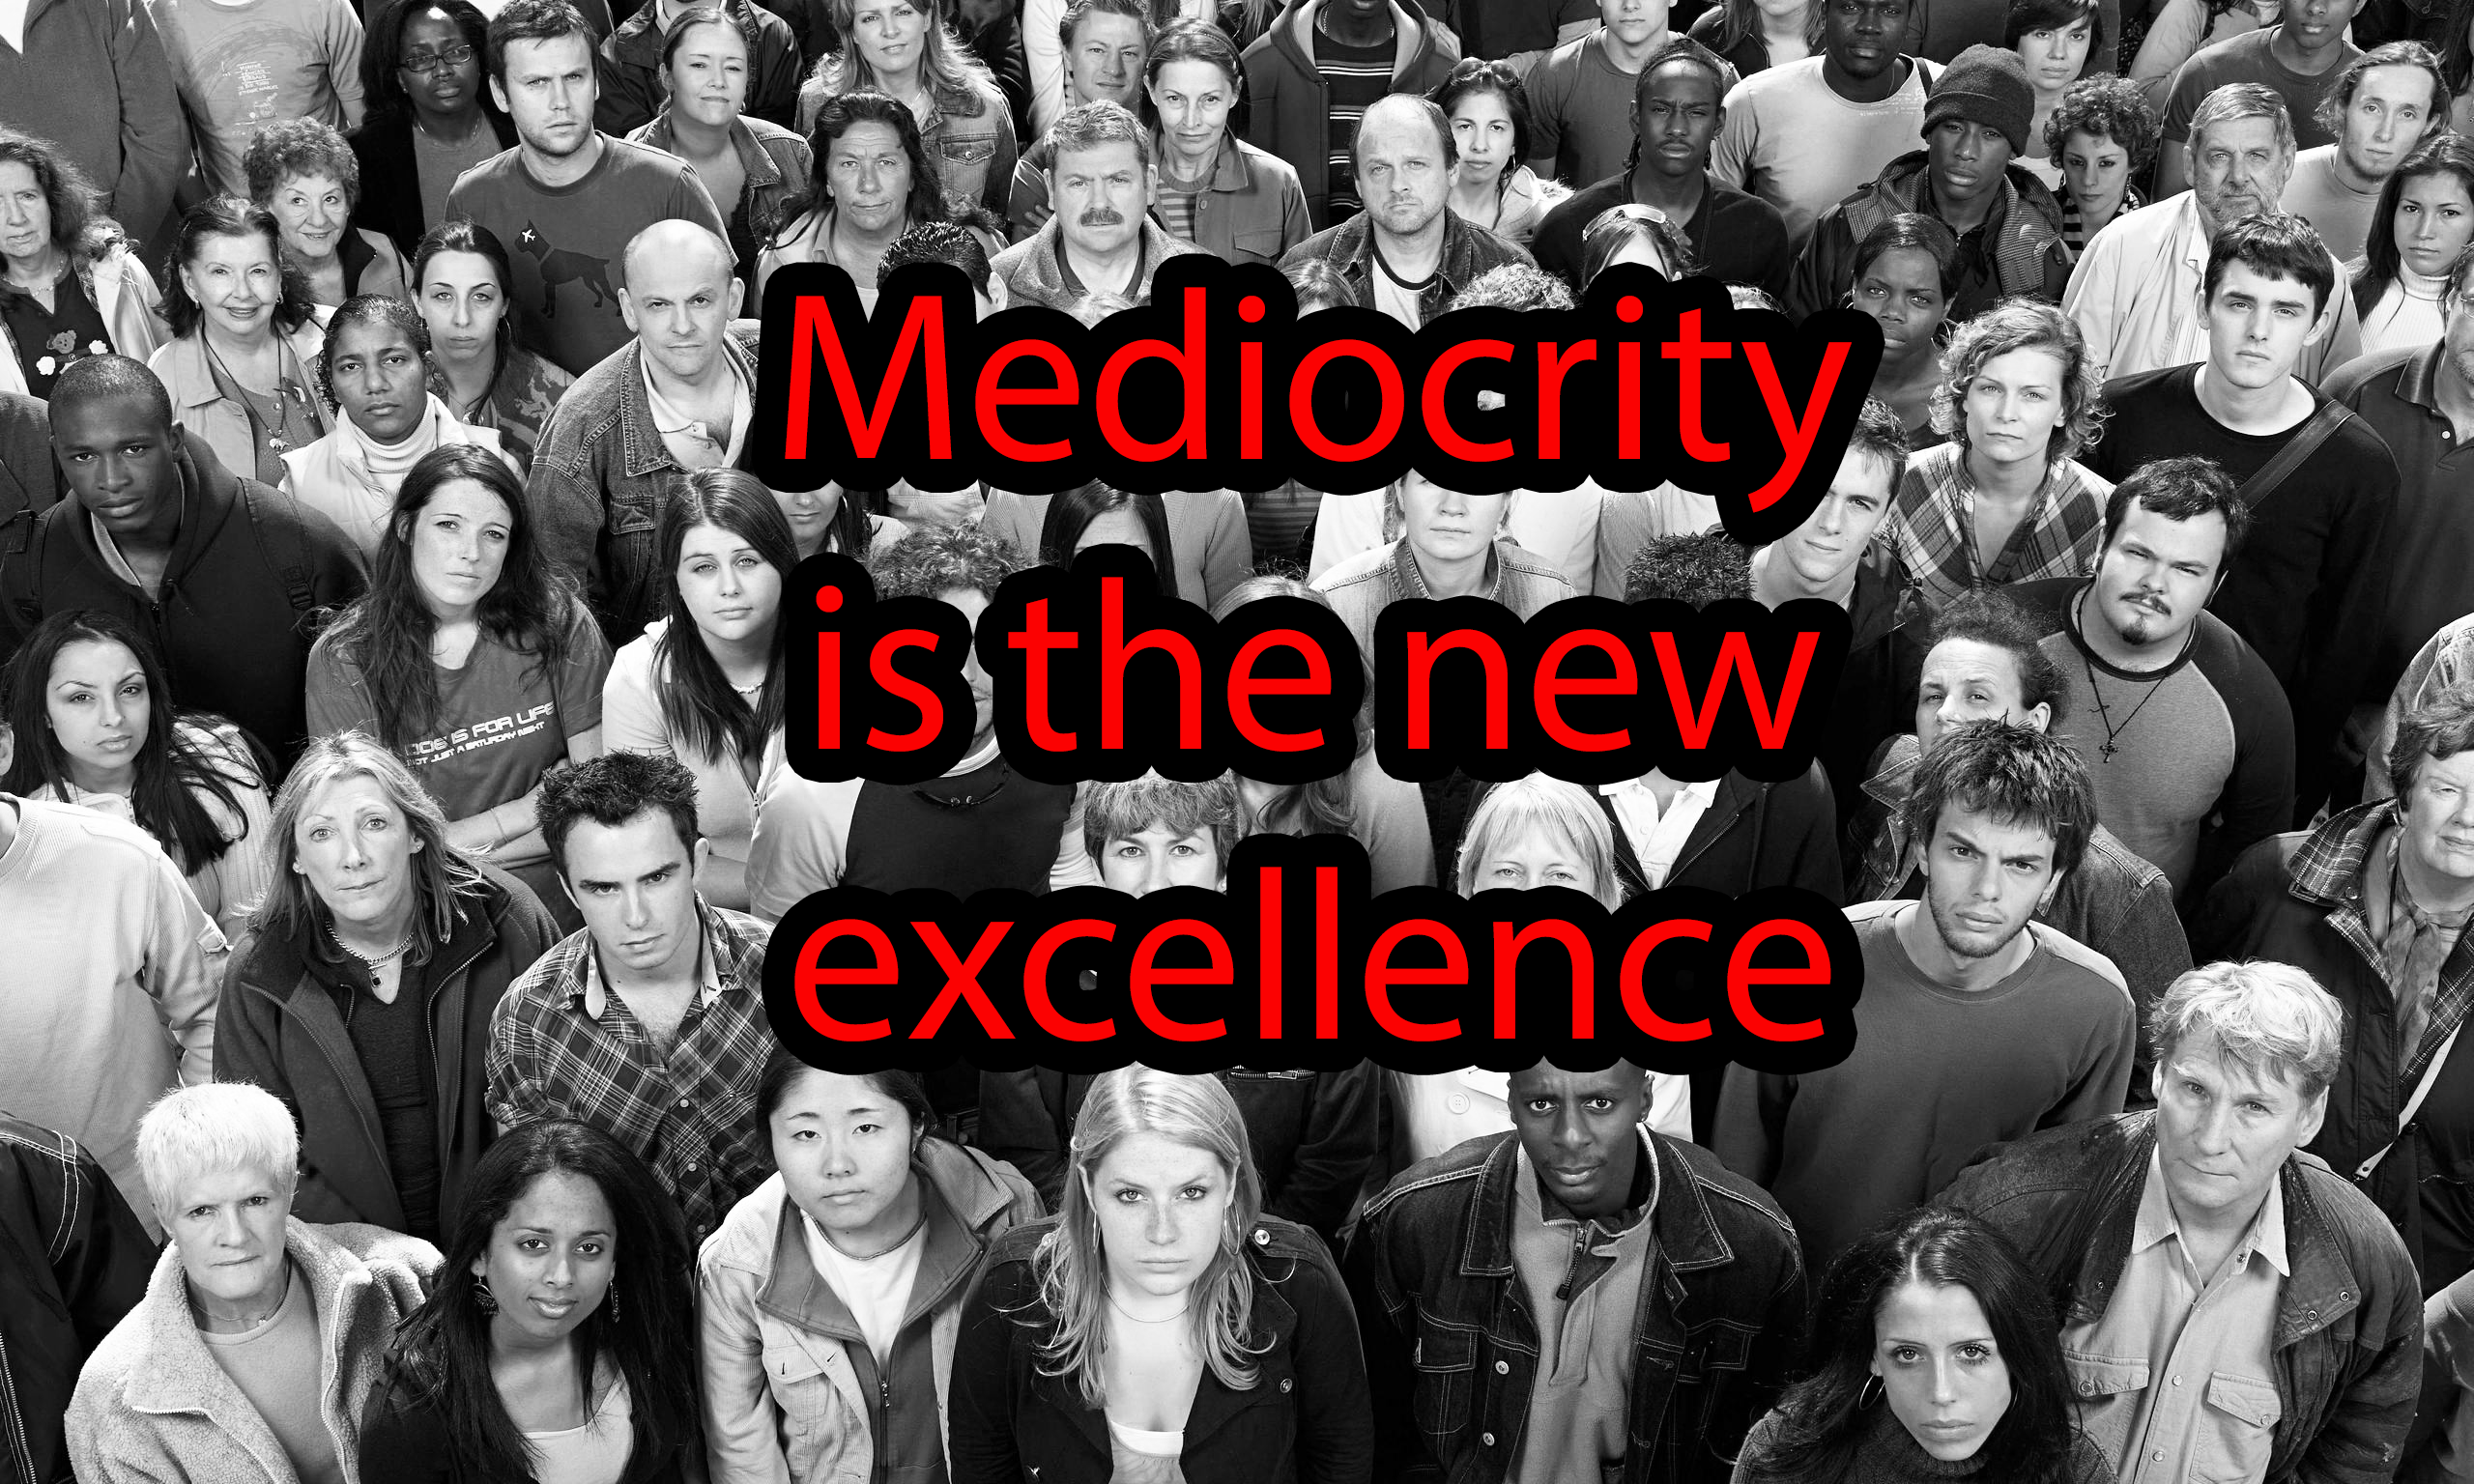 Mediocrity sets the bar